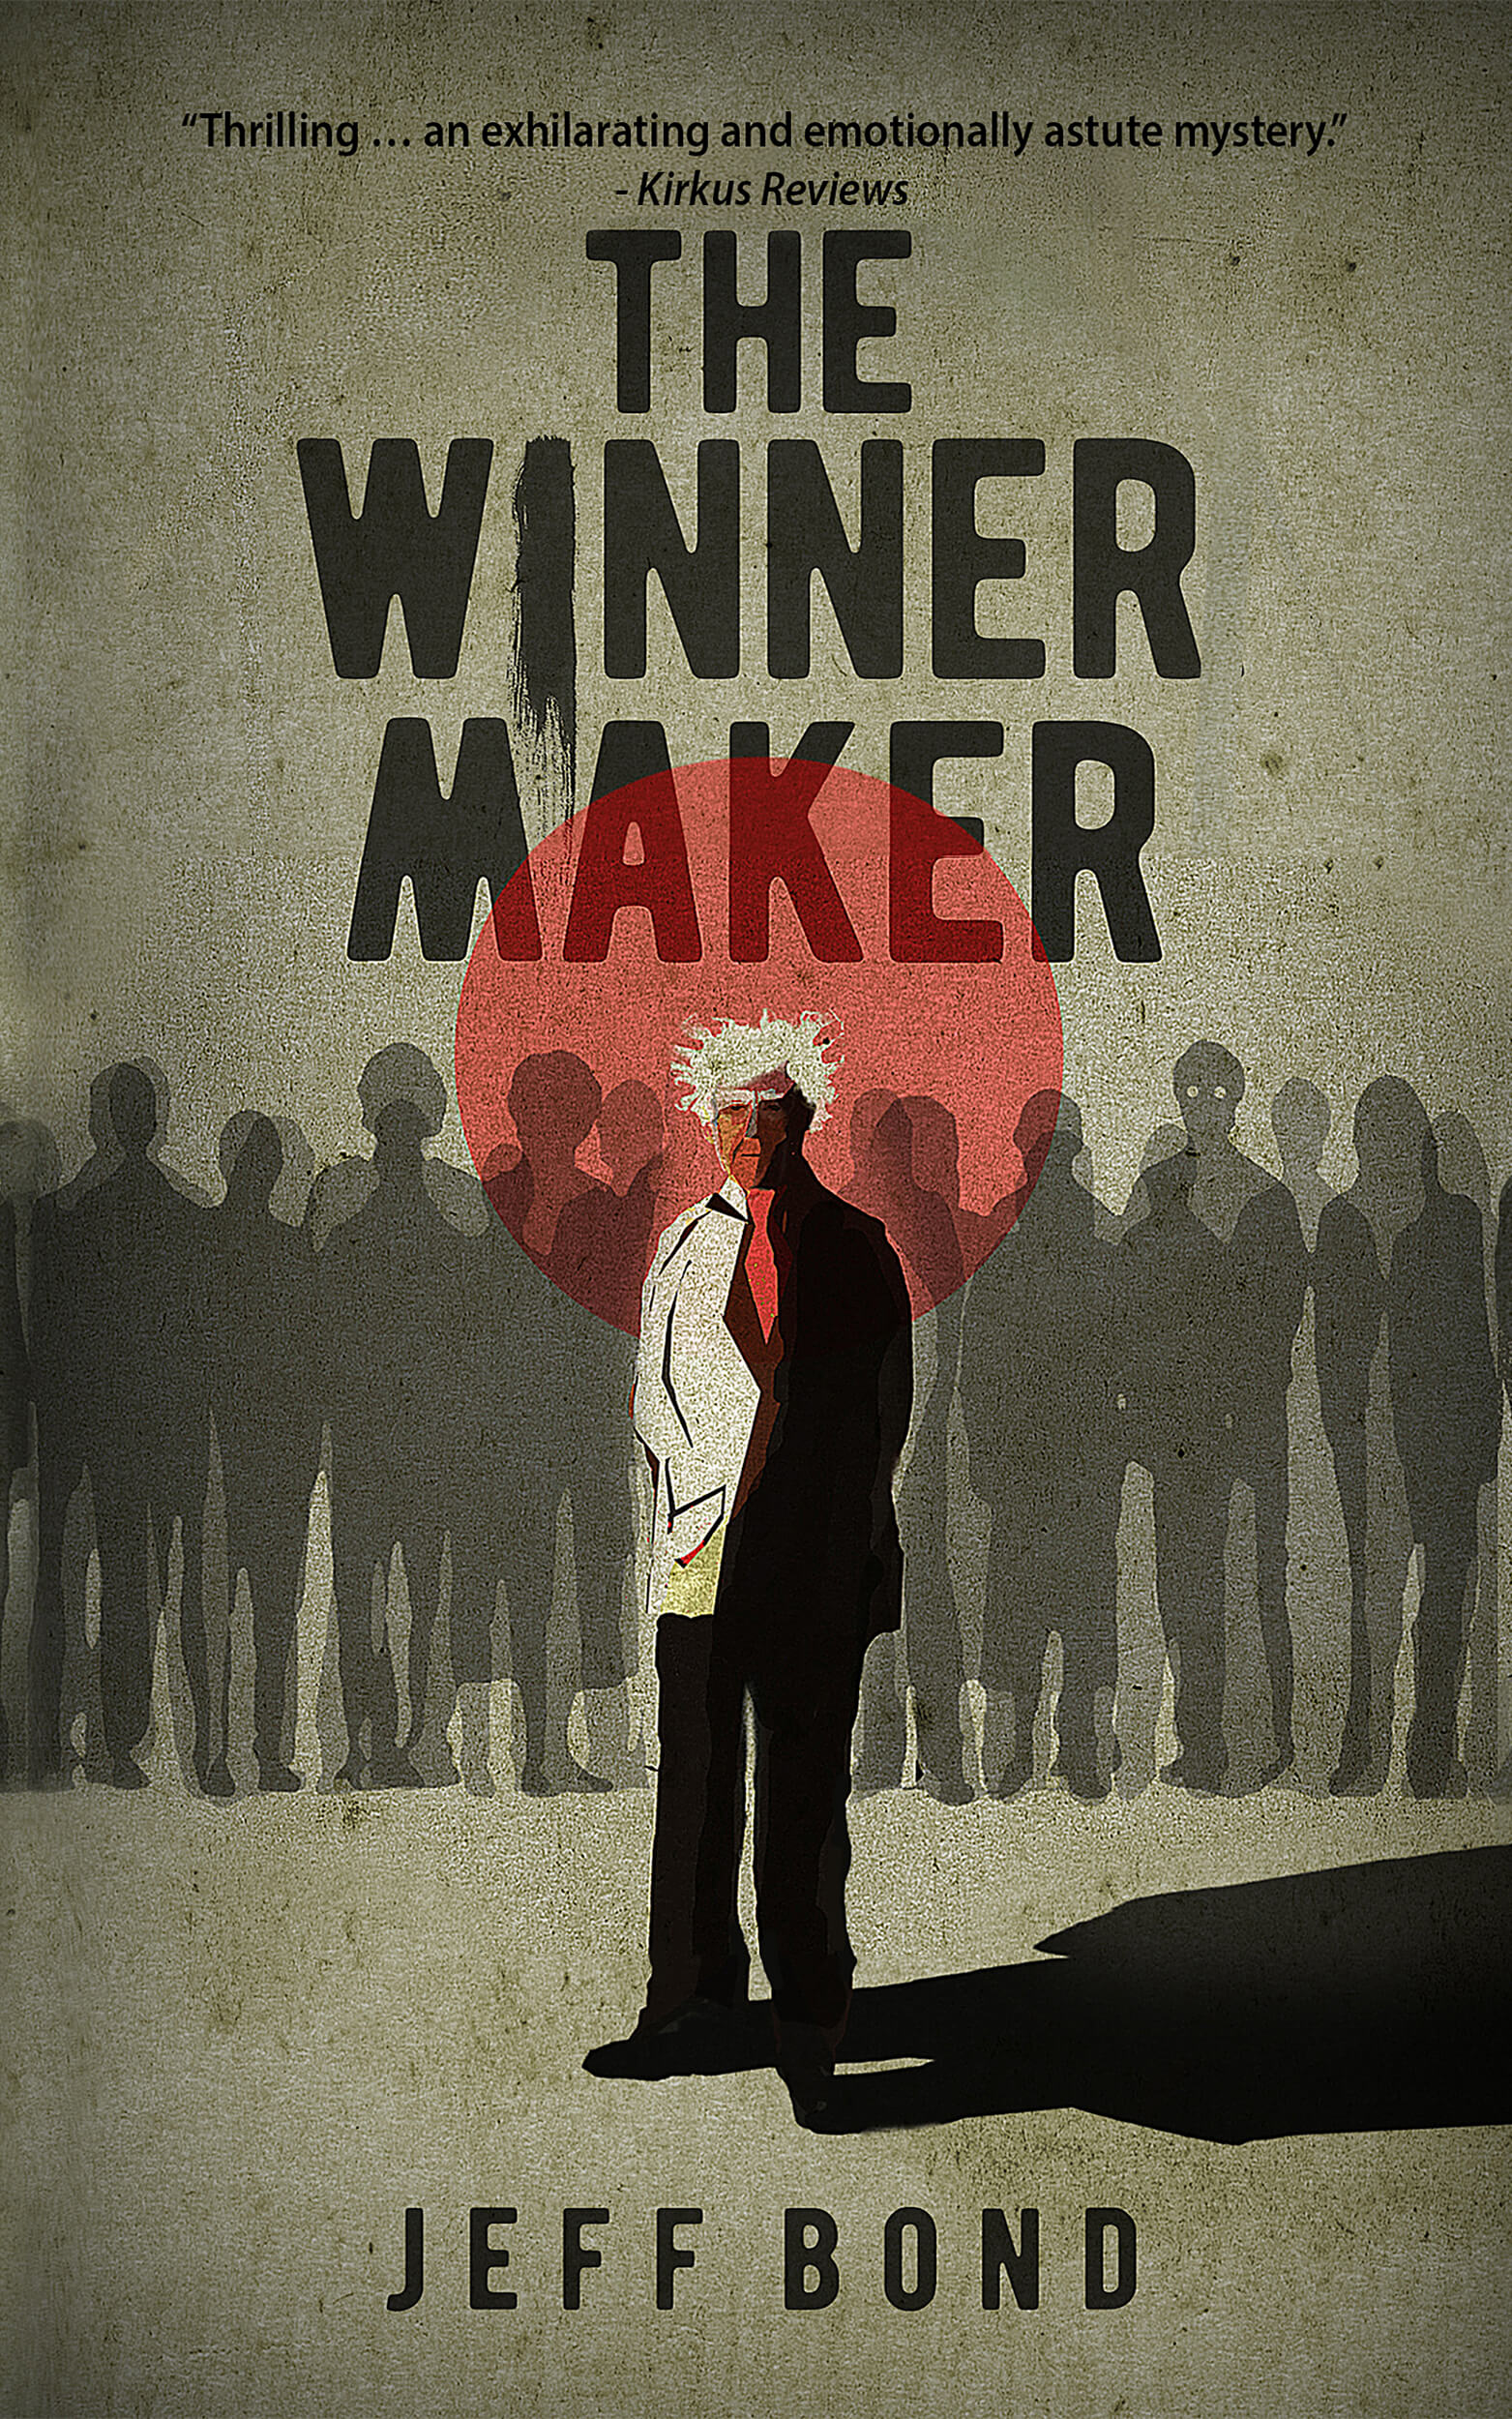 The Winner Maker by Jeff Bond